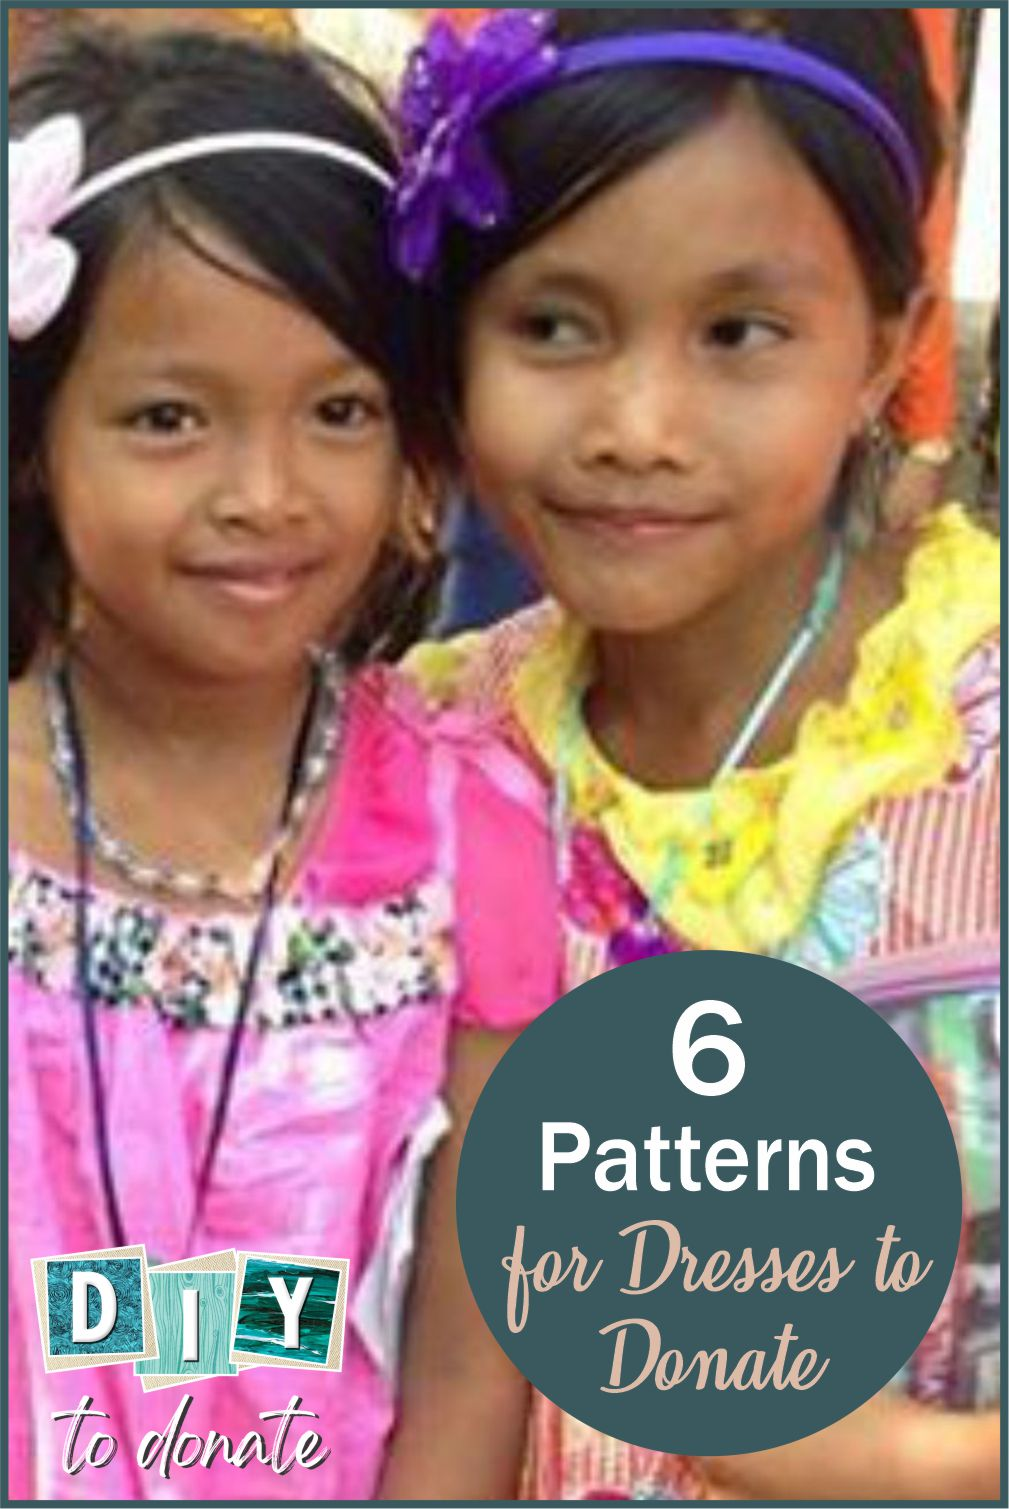 6 easy (and cute!) patterns to make little dresses to donate. One organization even gives you the supplies! #diytodonate #donate #handmade #dressestodonate #diy #handmadedressess #giveback #cutedresses